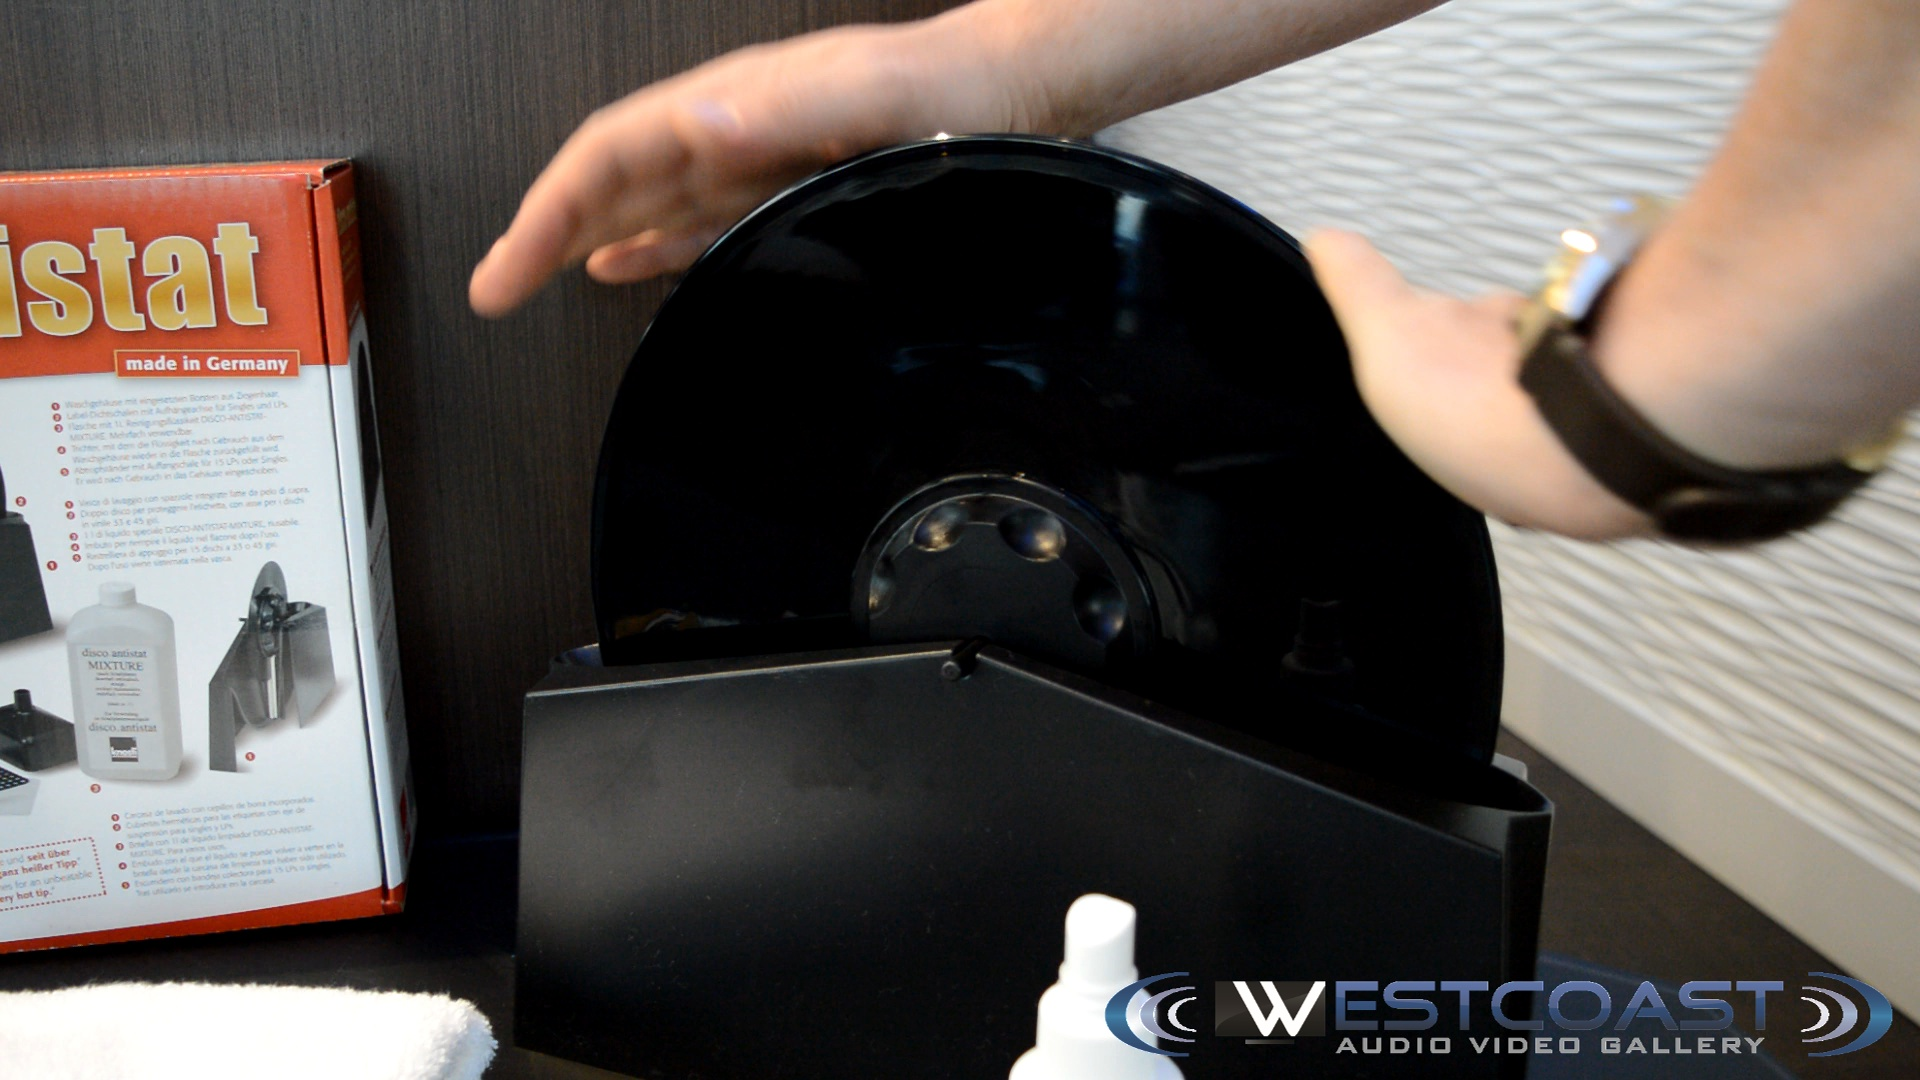 Knosti Disco-antistat record washer